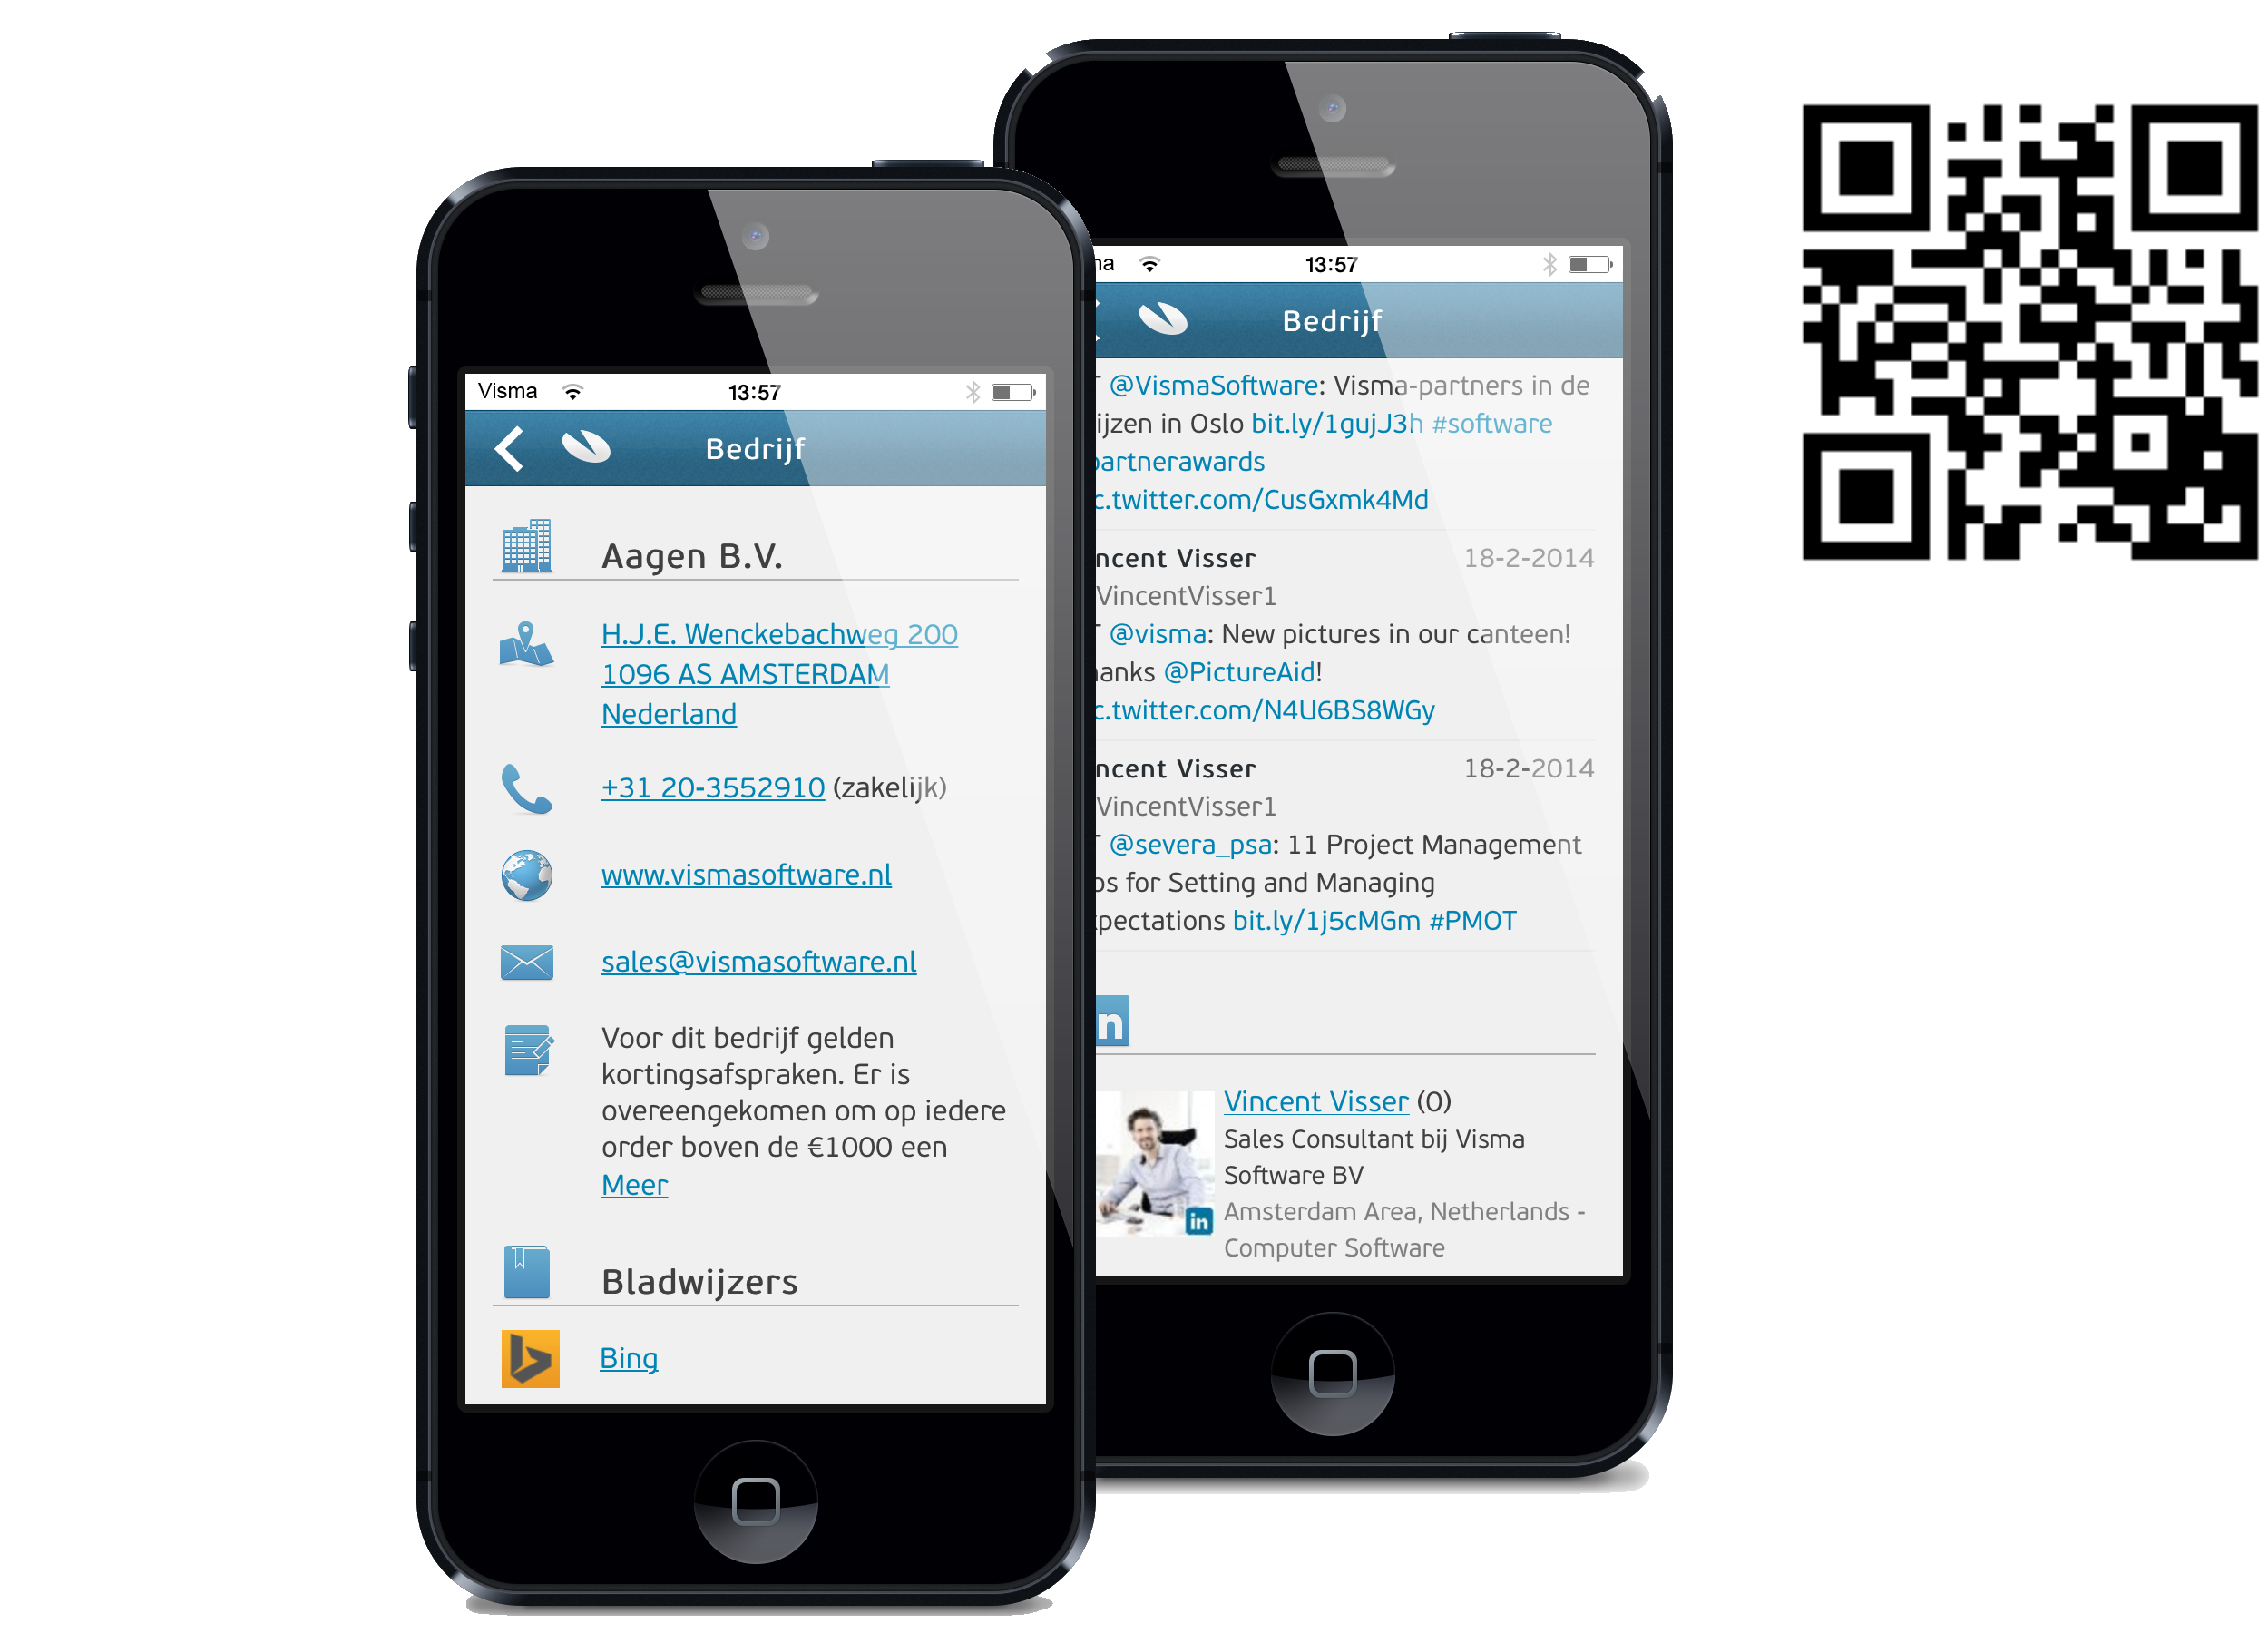 Nieuw in AccountView Go 5 Afbeelding 1.2. Scan de QR-code om AccountView Contact direct op te halen.